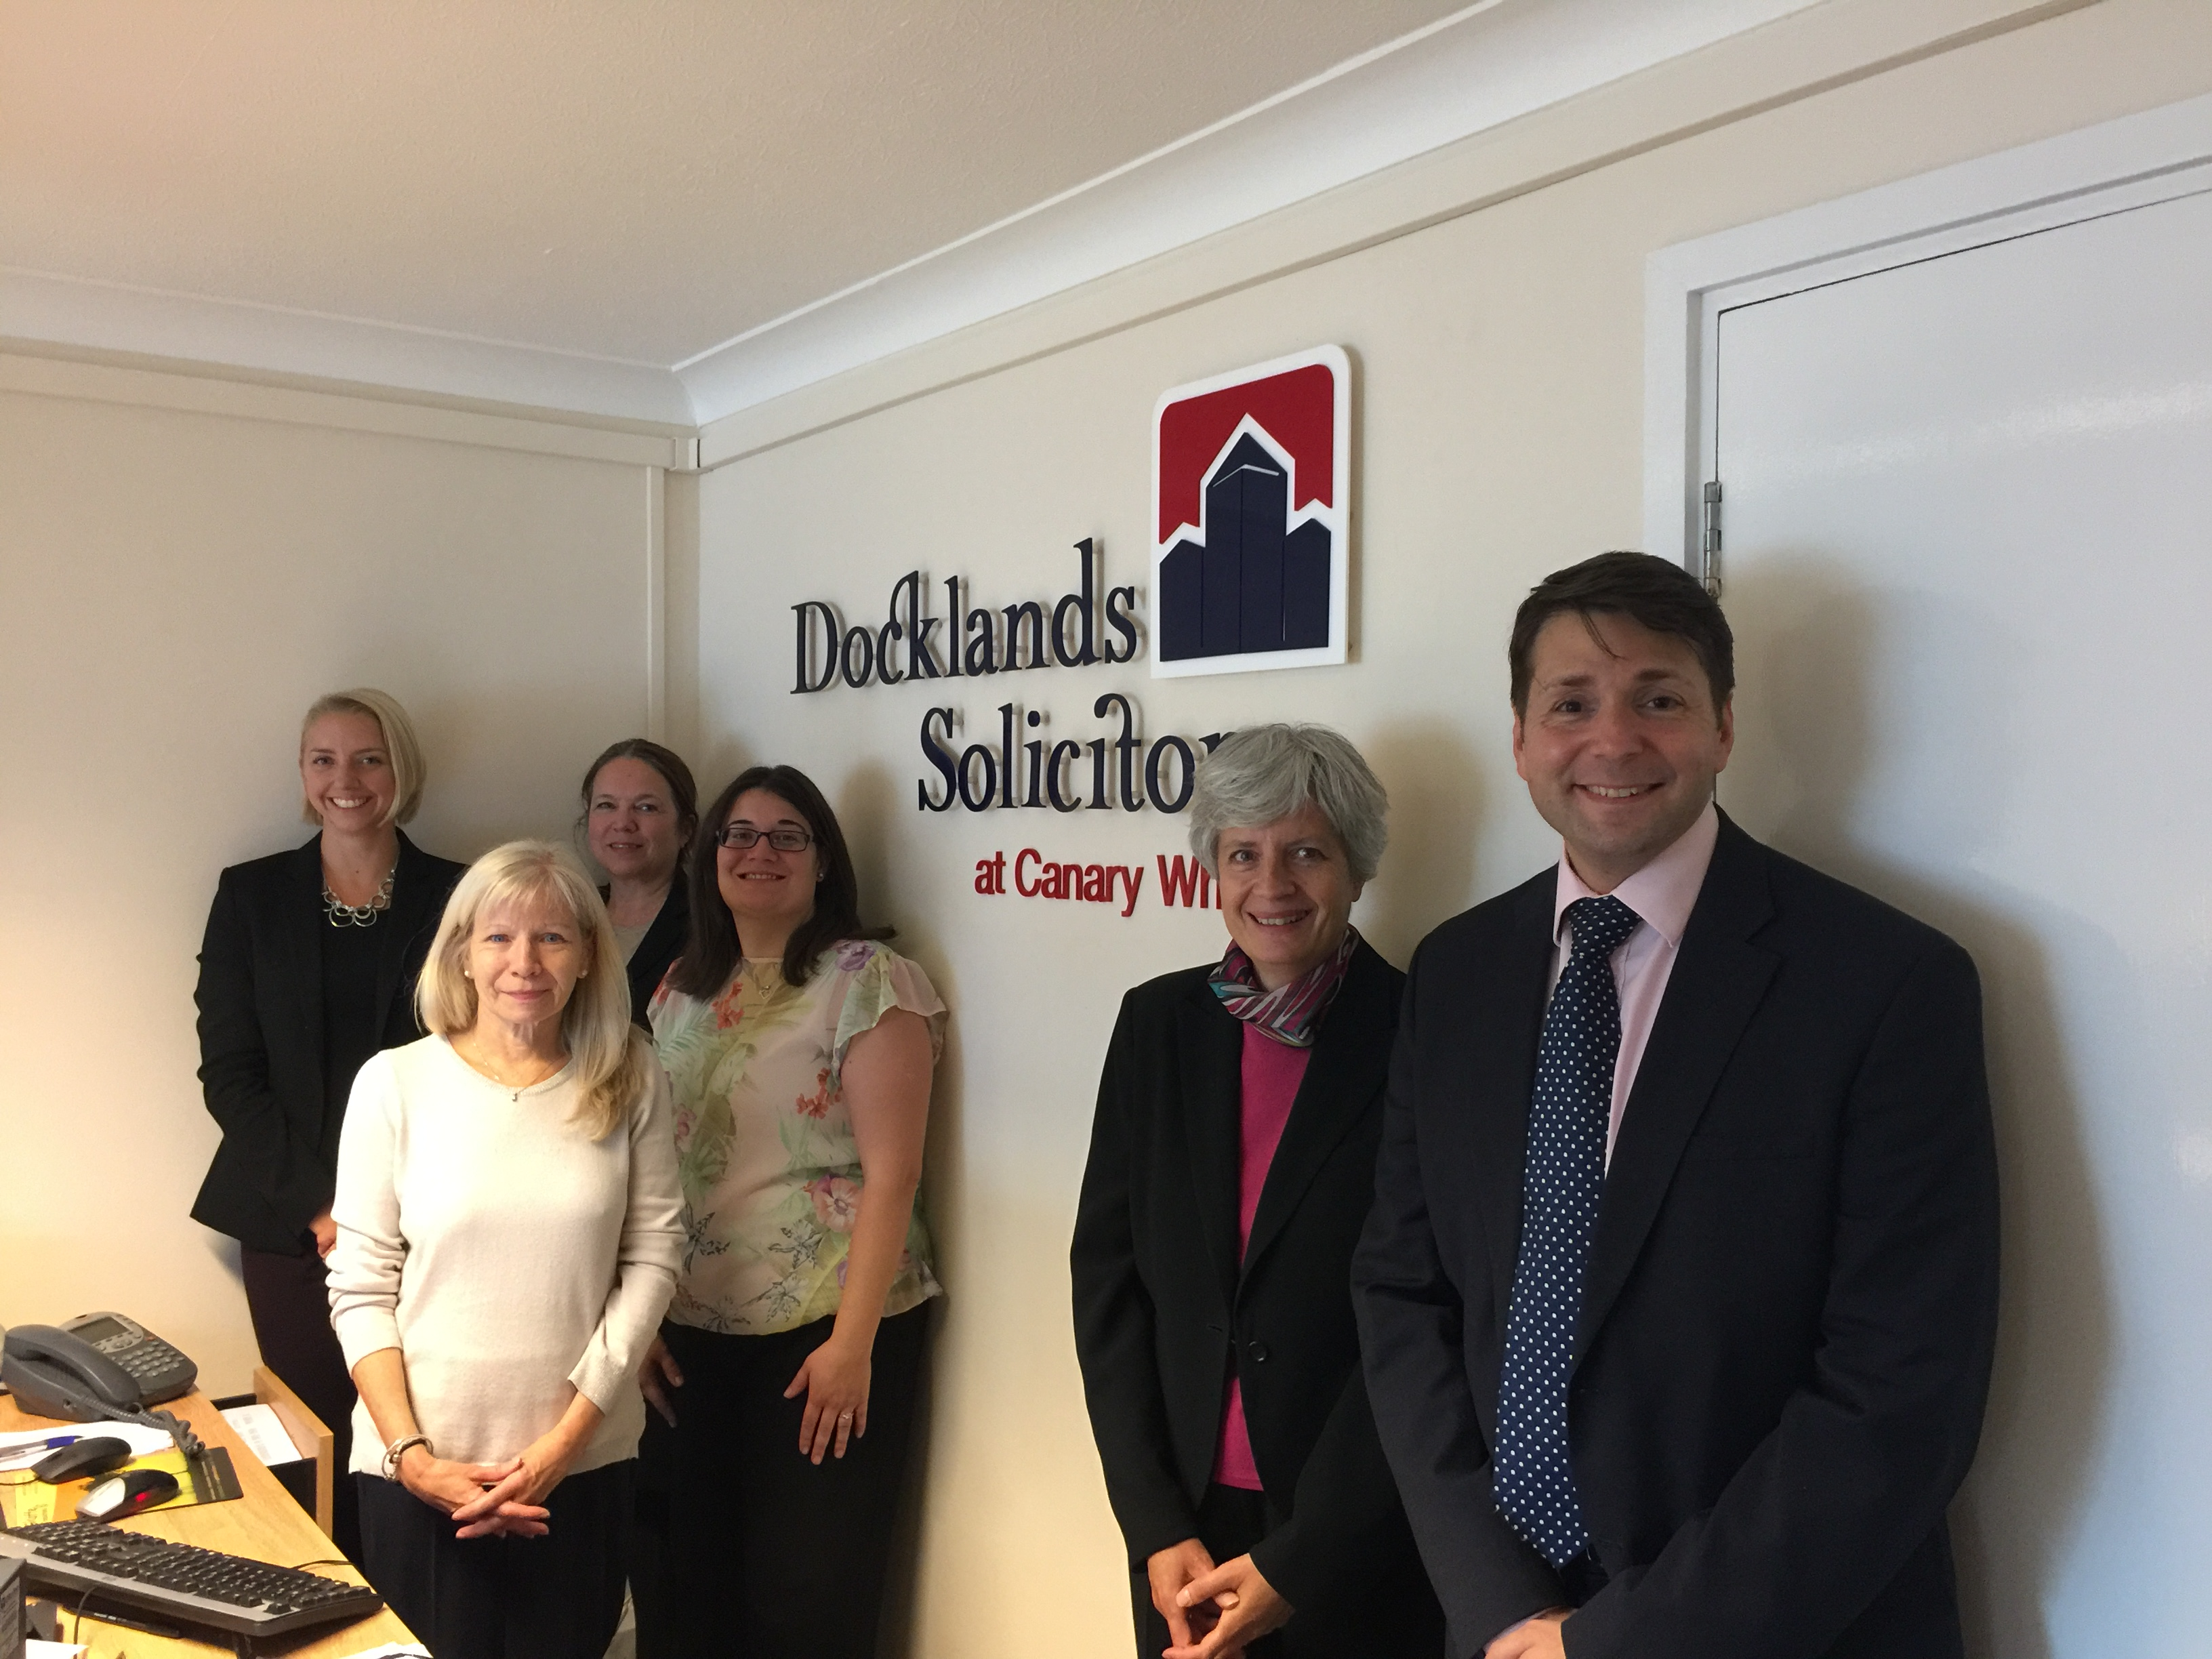 Docklands Solicitors joins the Whitehead Monckton team